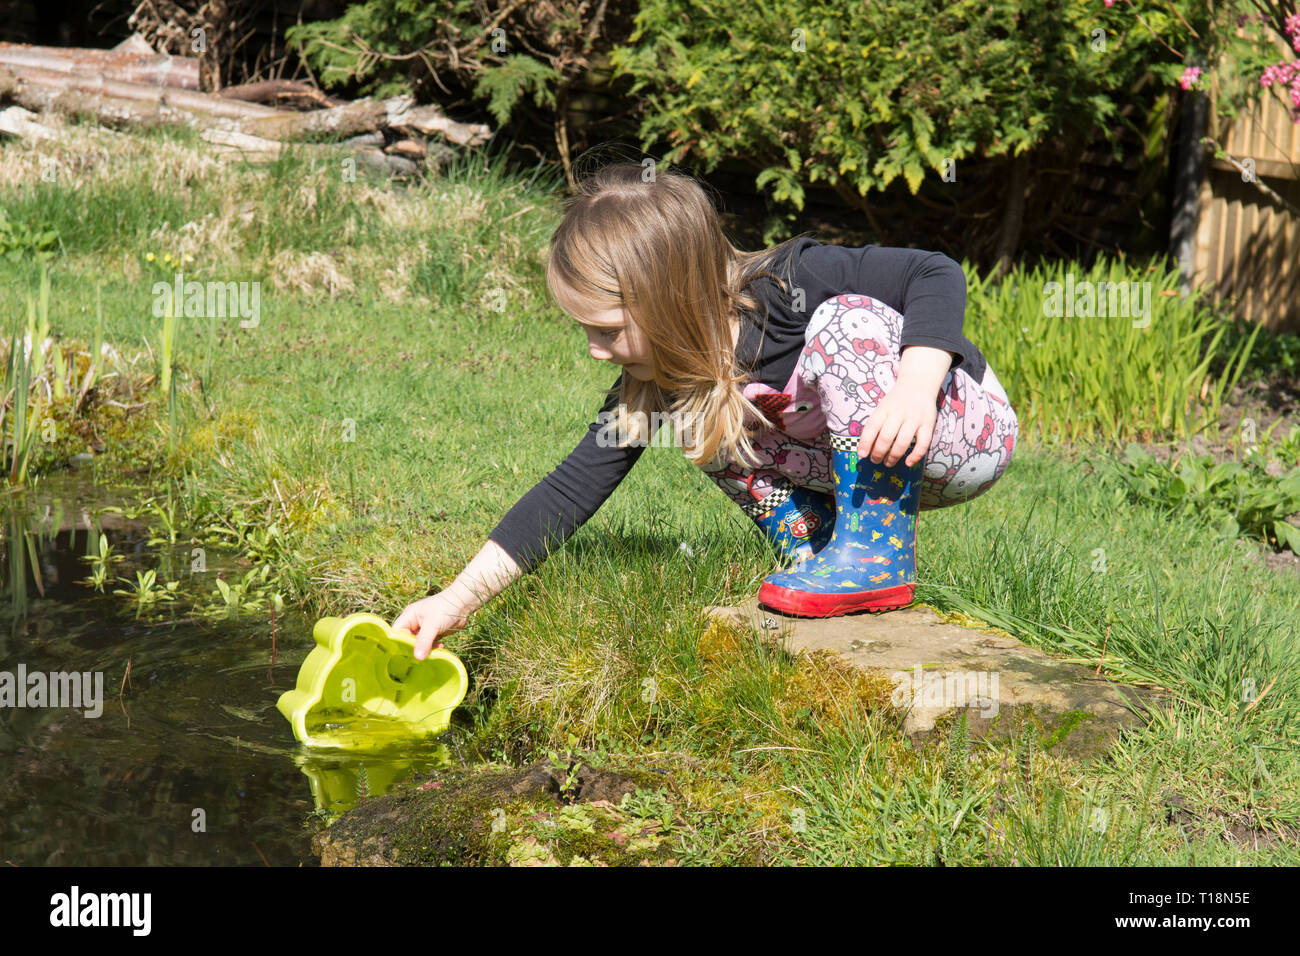 young girl pond dipping in garden wildlife pond removing tadpoles in children's bucket, three years old. UK. March. Stock Photo